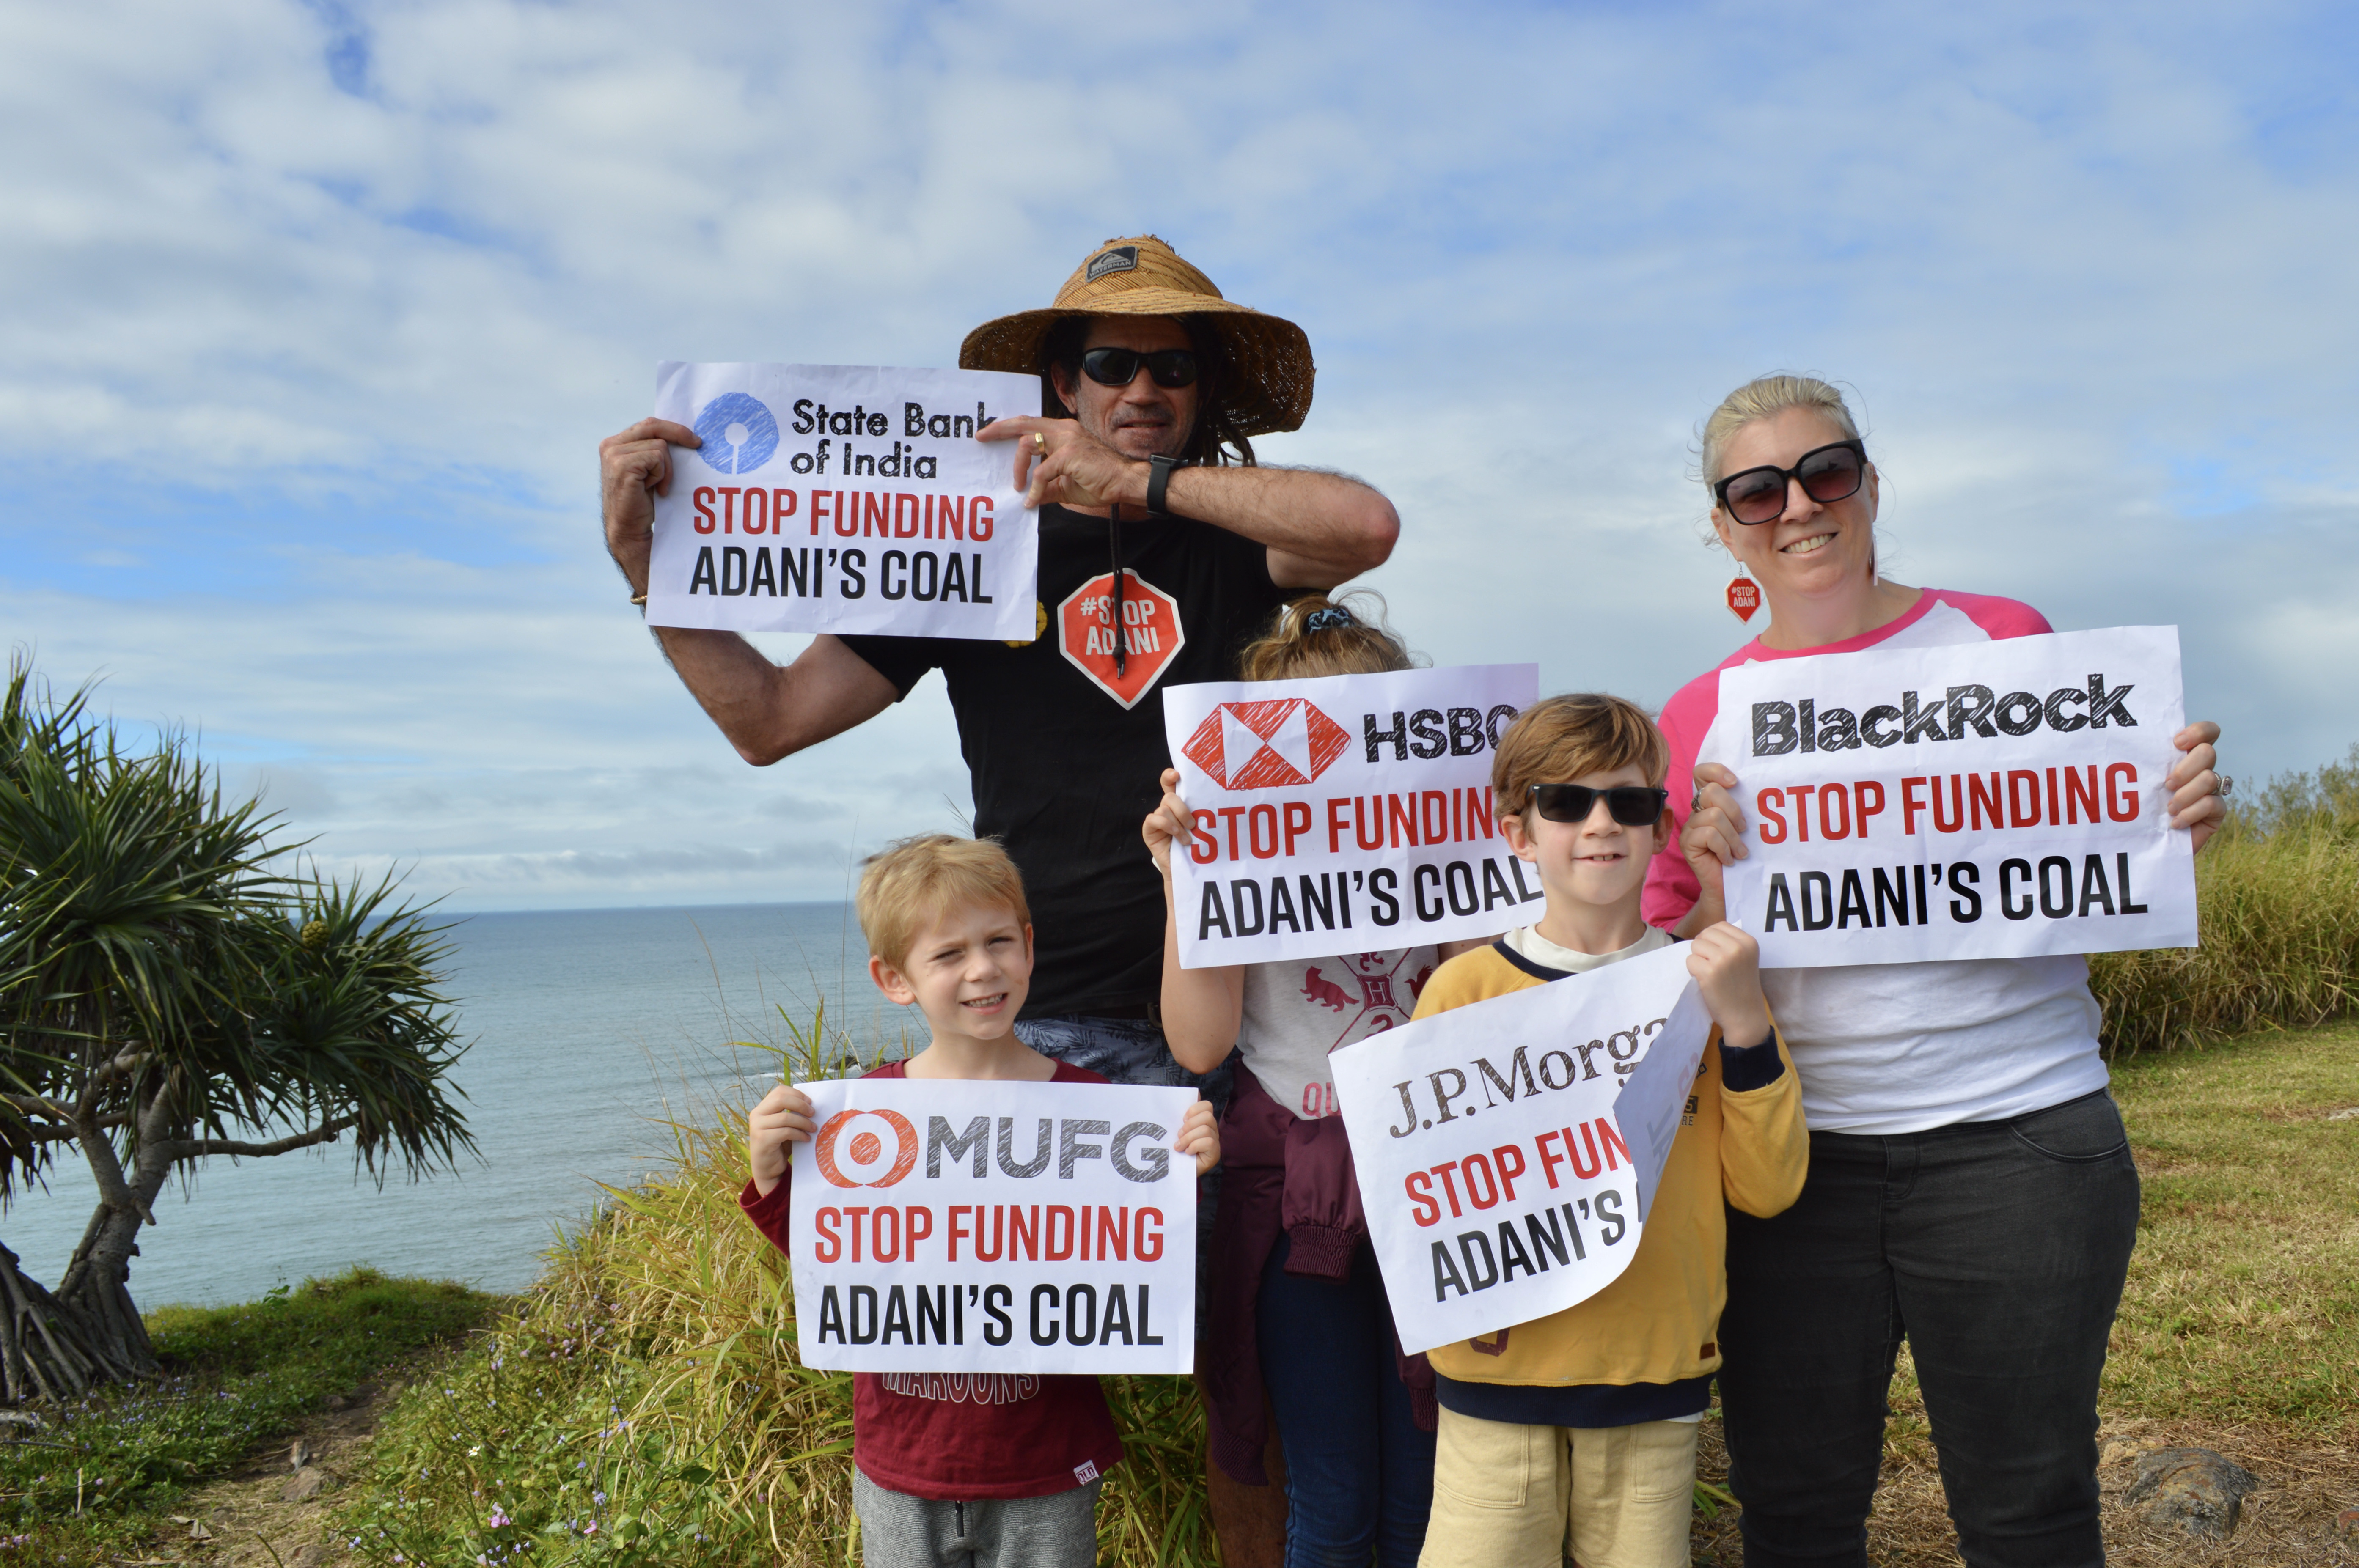 Image: A family standing outdoors with the ocean behind them, holding signs telling Adani investors to stop funding Adani coal